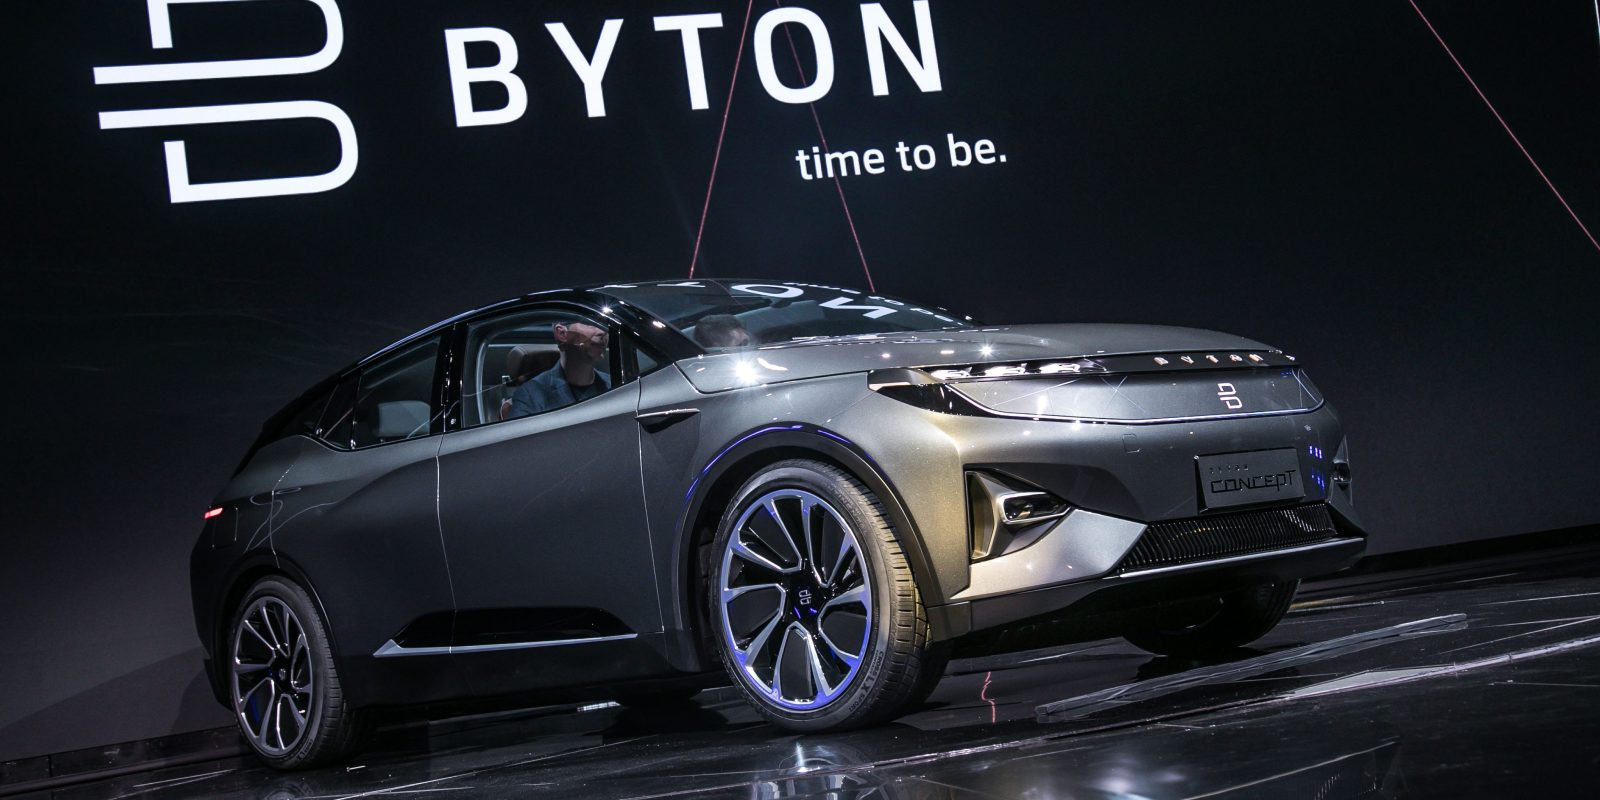 BYTON gets California license to become an automotive retailer